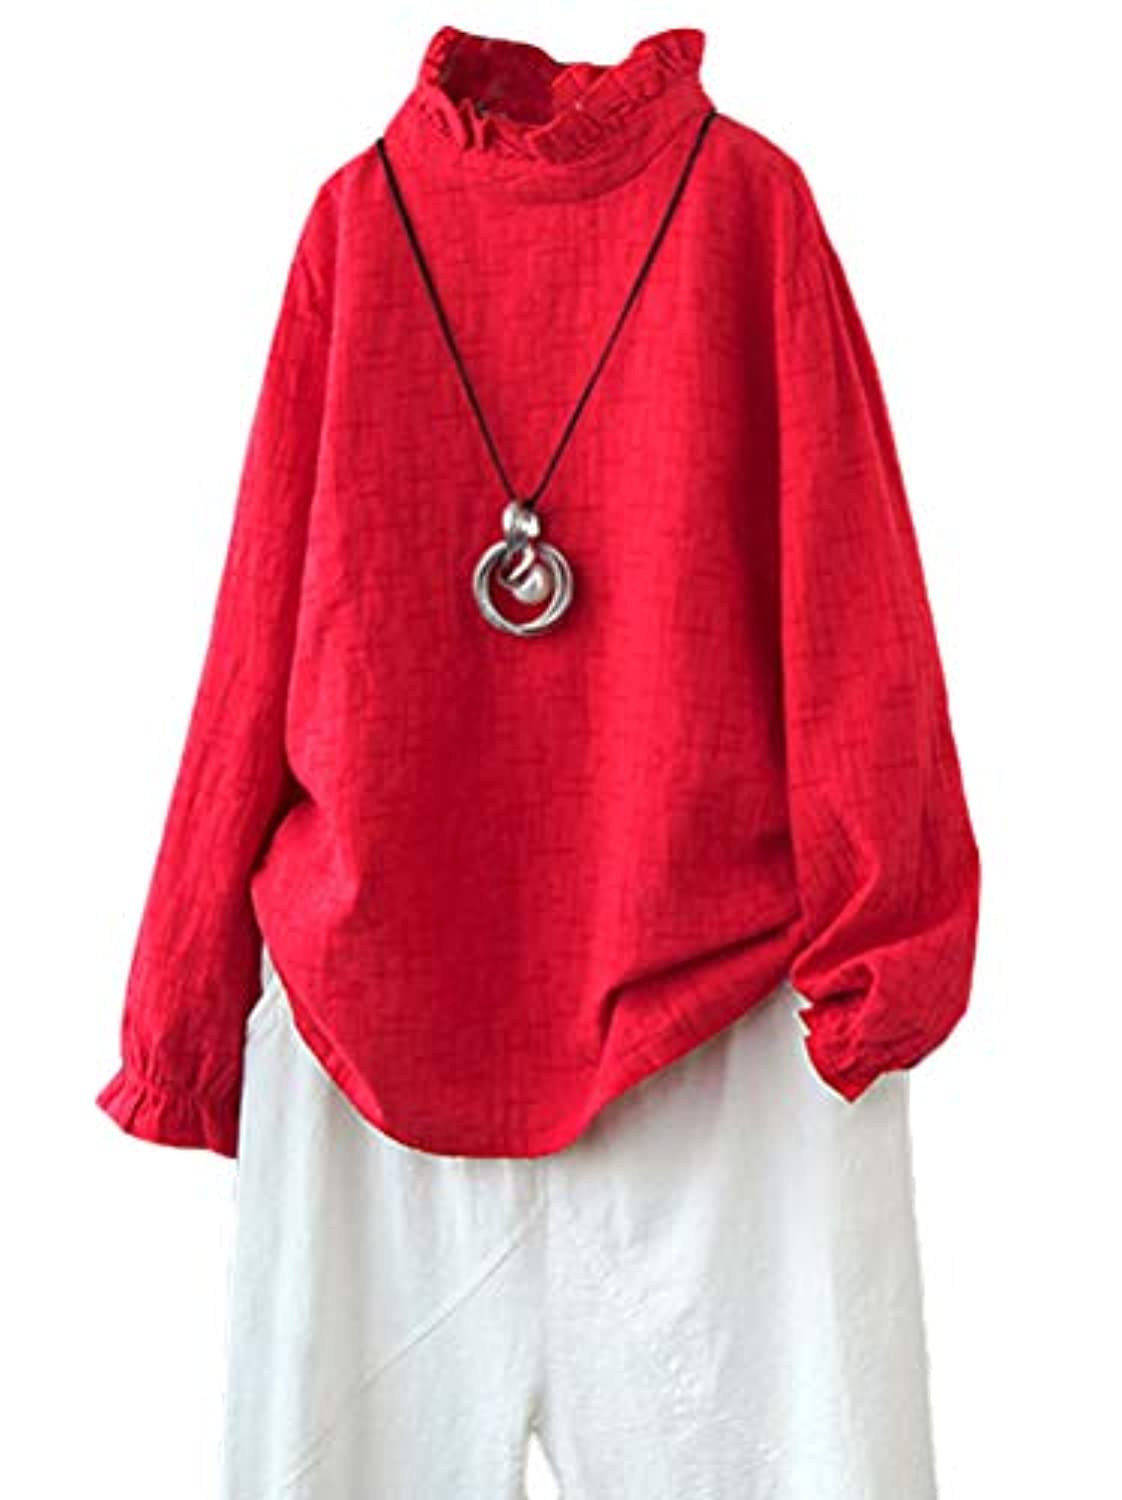 Women's Cotton Tunic Tops Textured Shirt Turtleneck Long Sleeve Cowl Neck Blouse